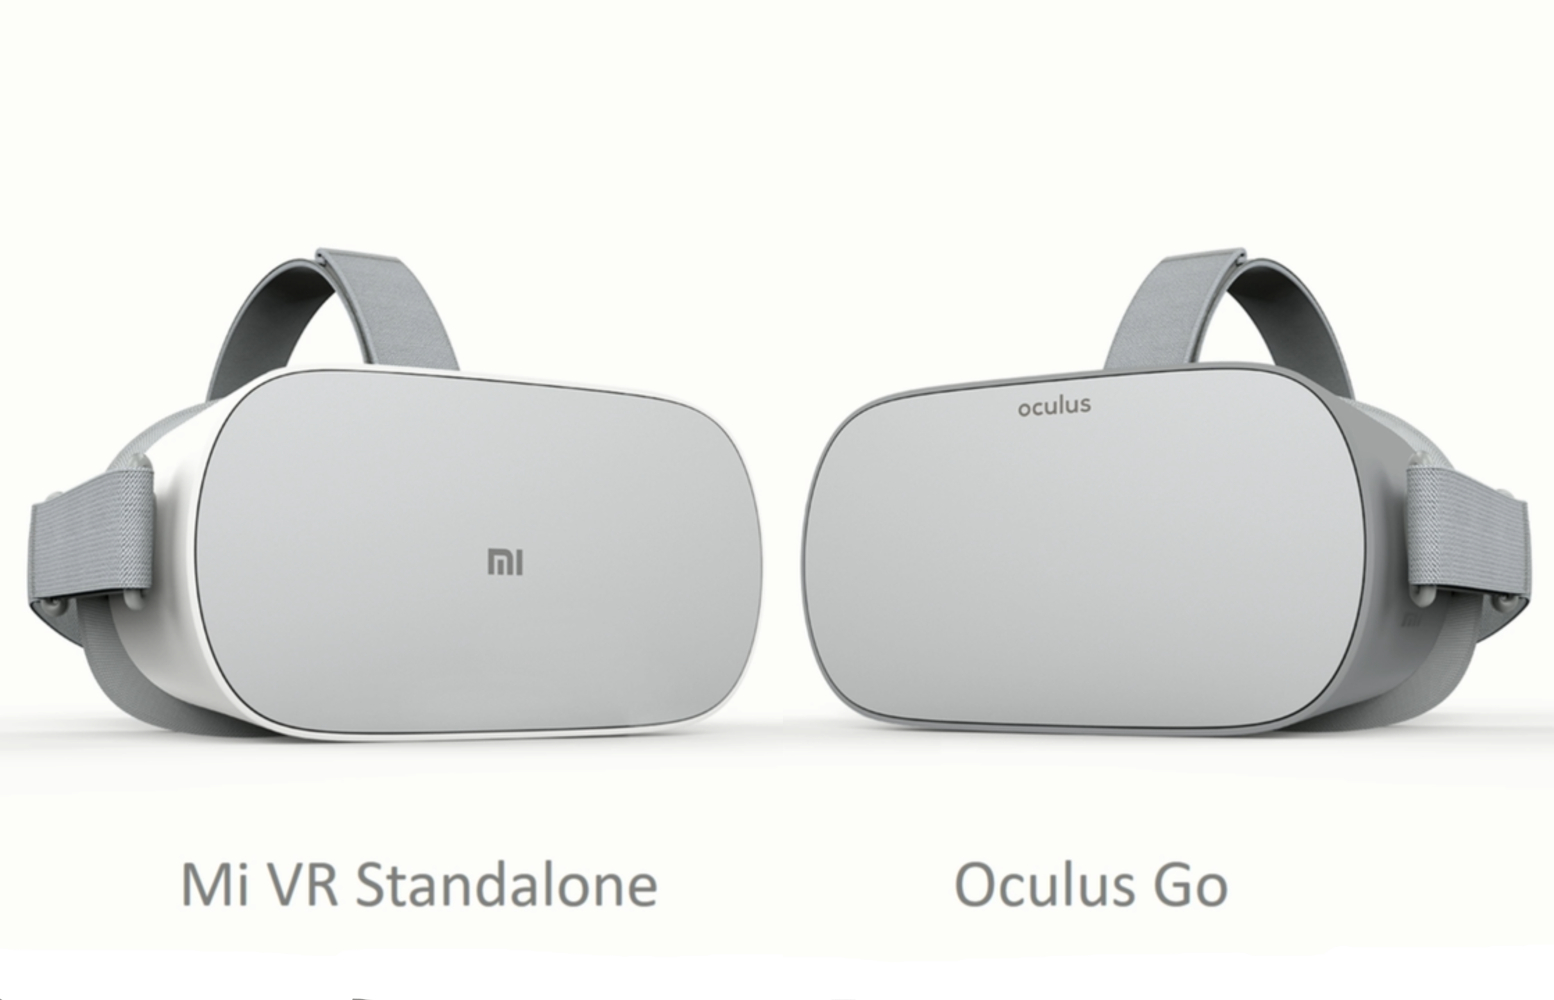 Oculus Go relies on an older Qualcomm Snapdragon chip ...